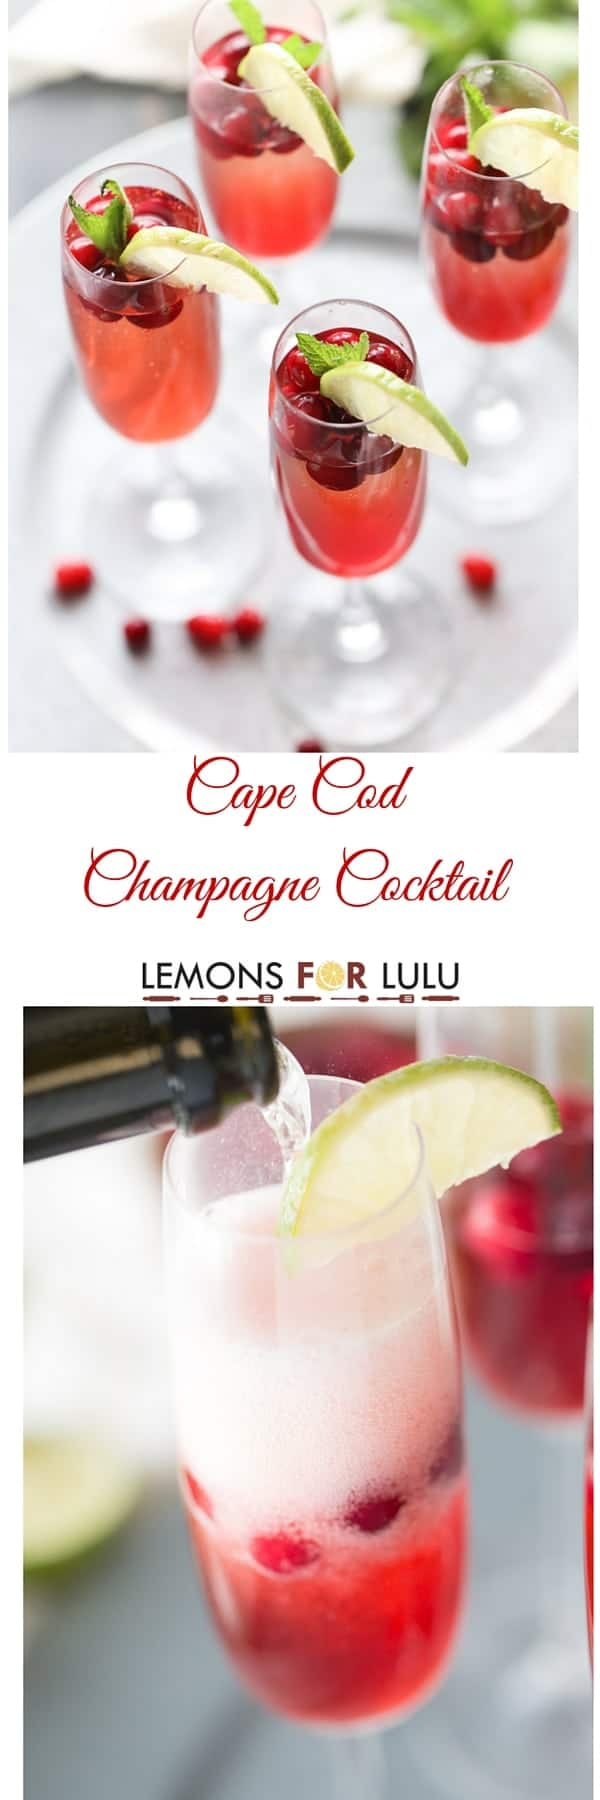 Festive champagne cocktails don't get more delicious than this Cape Cod champagne cocktail. lemonsforlulu.com